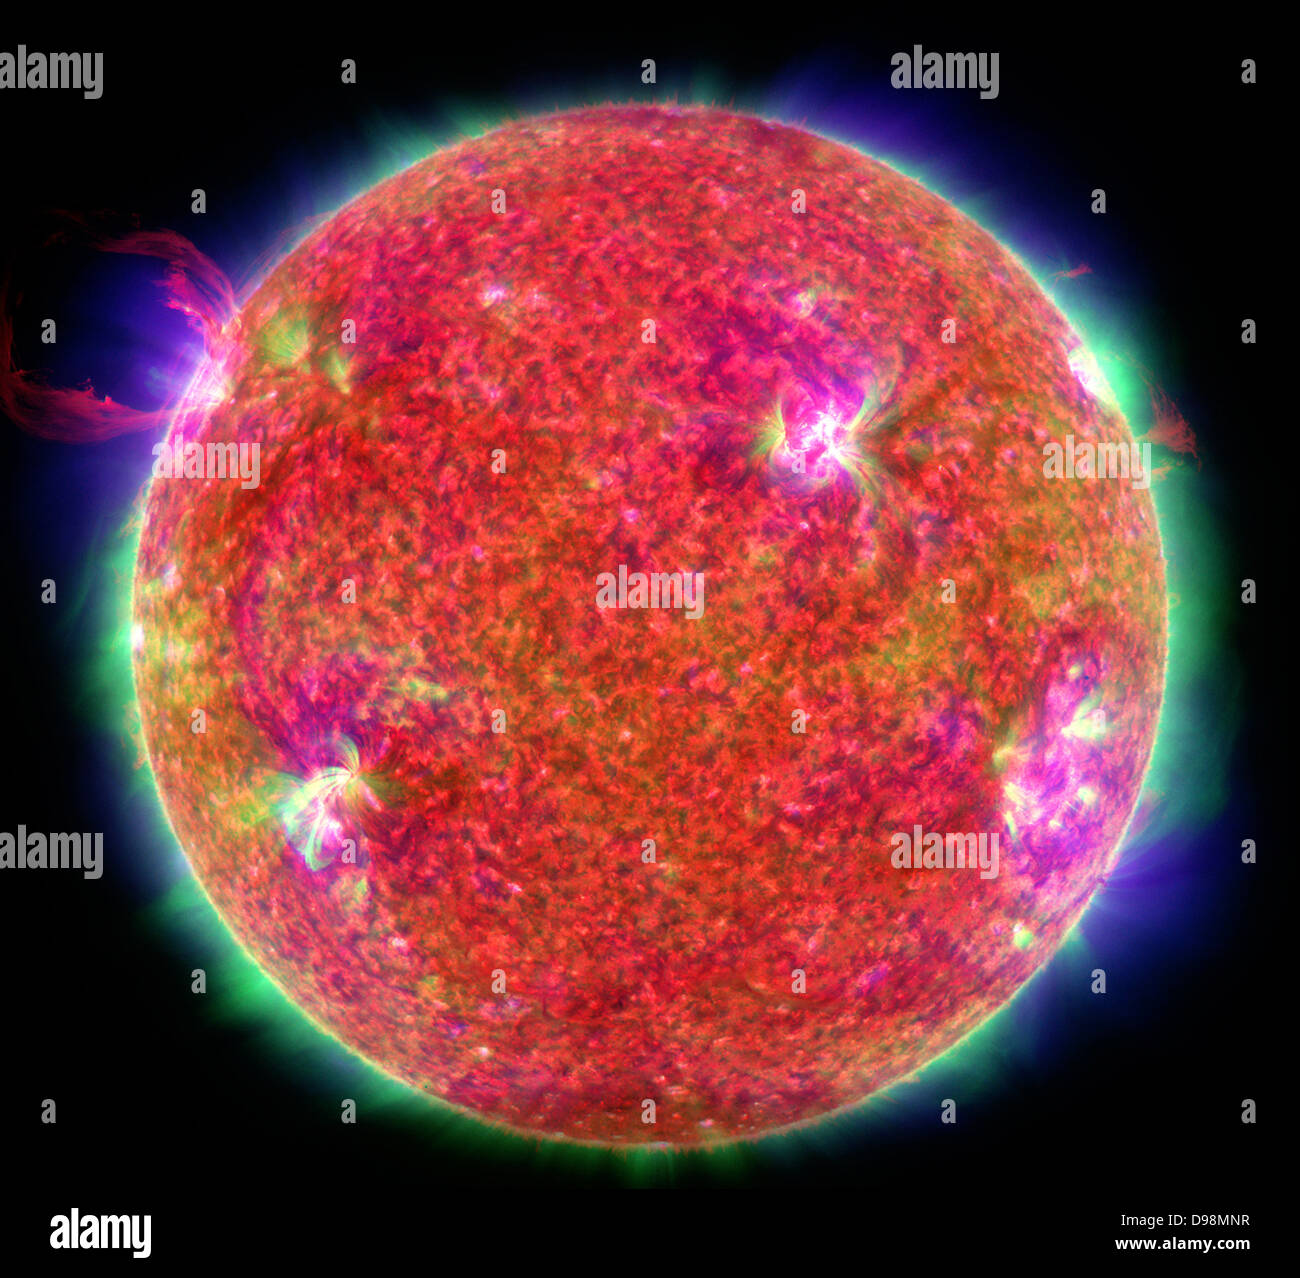 first light' image from the three state-of-the art instruments on NASA's Solar Dynamics Observatory (SDO) - Stock Image